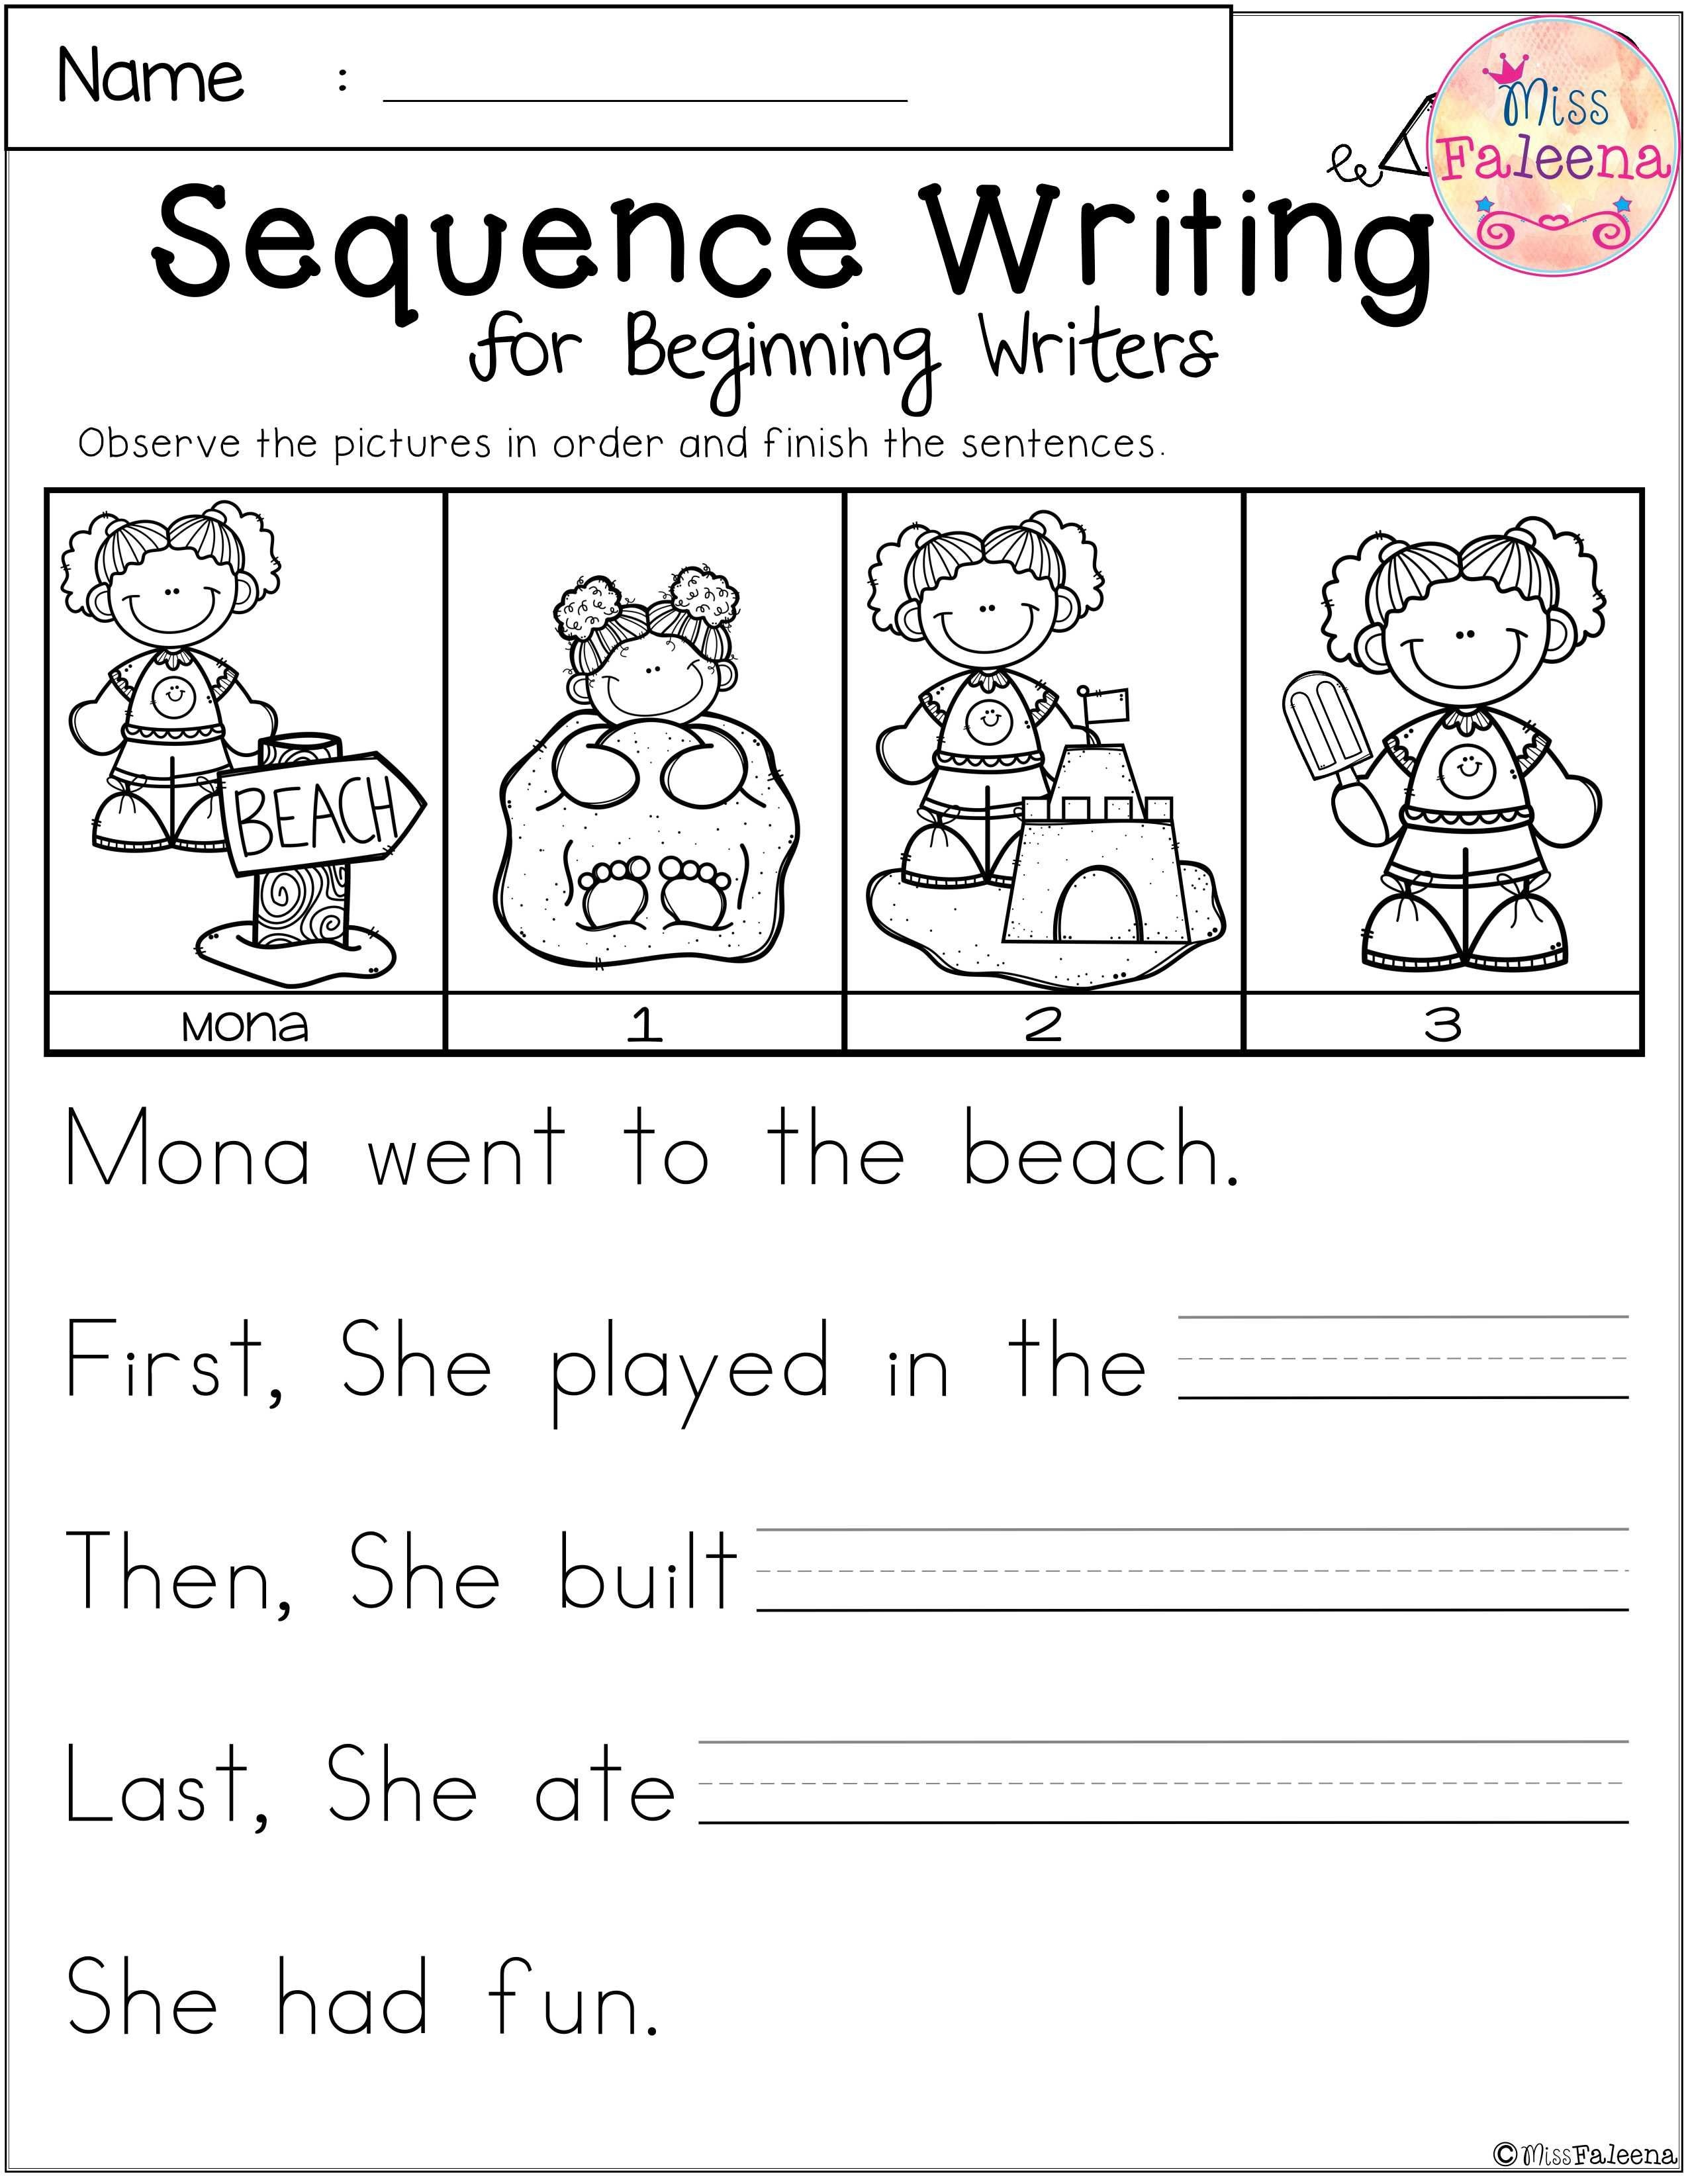 Free Sequence Writing For Beginning Writers | Dear Teachers - Free Printable Sequencing Worksheets For Kindergarten